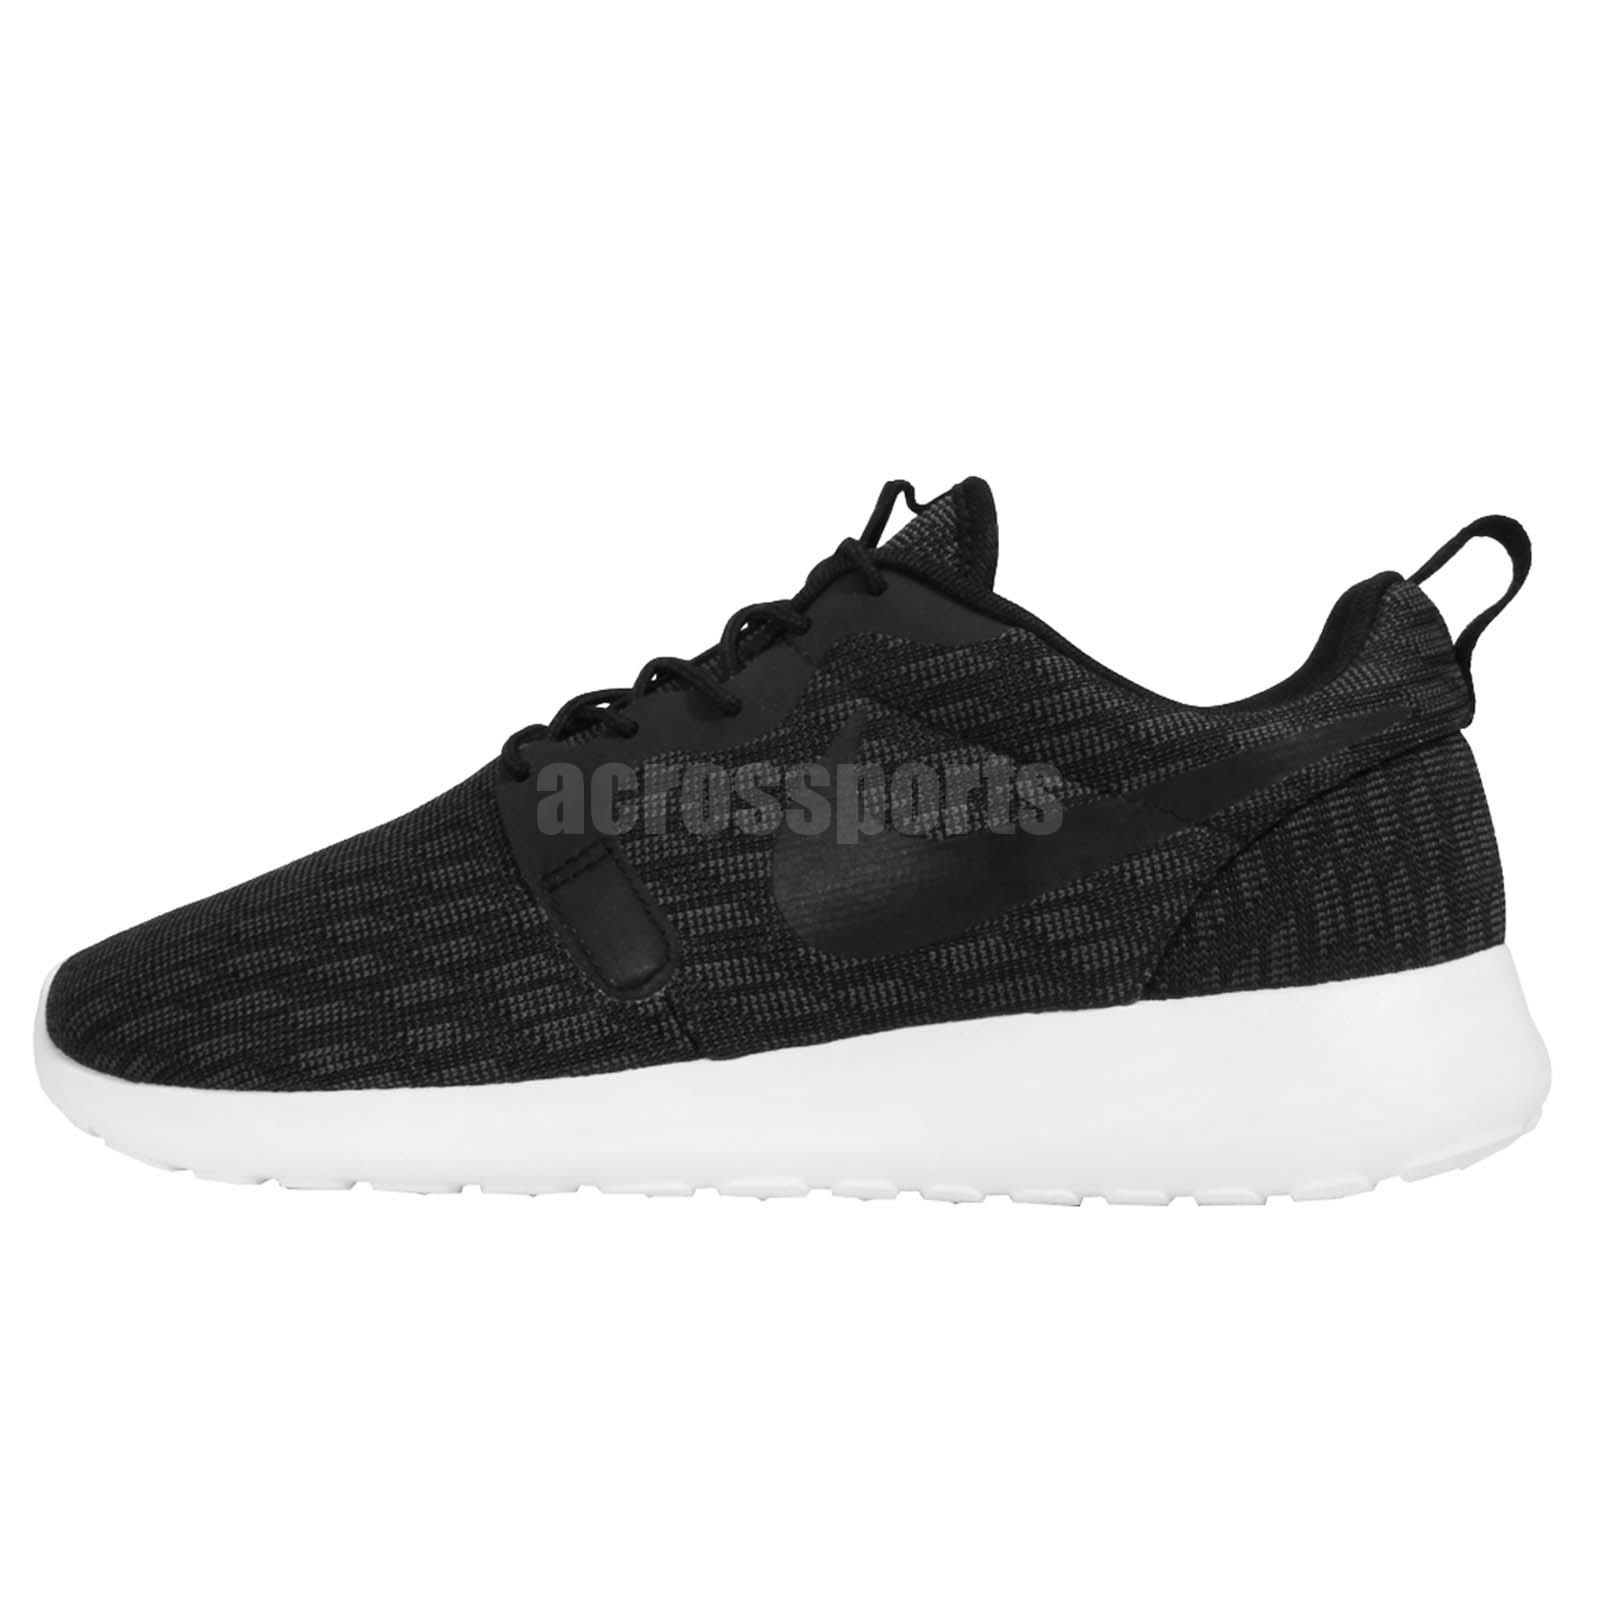 Sch Nike Roshe Run Shoes Mens Trainers 15709 Bn 76534 I Nike Roshe Sale